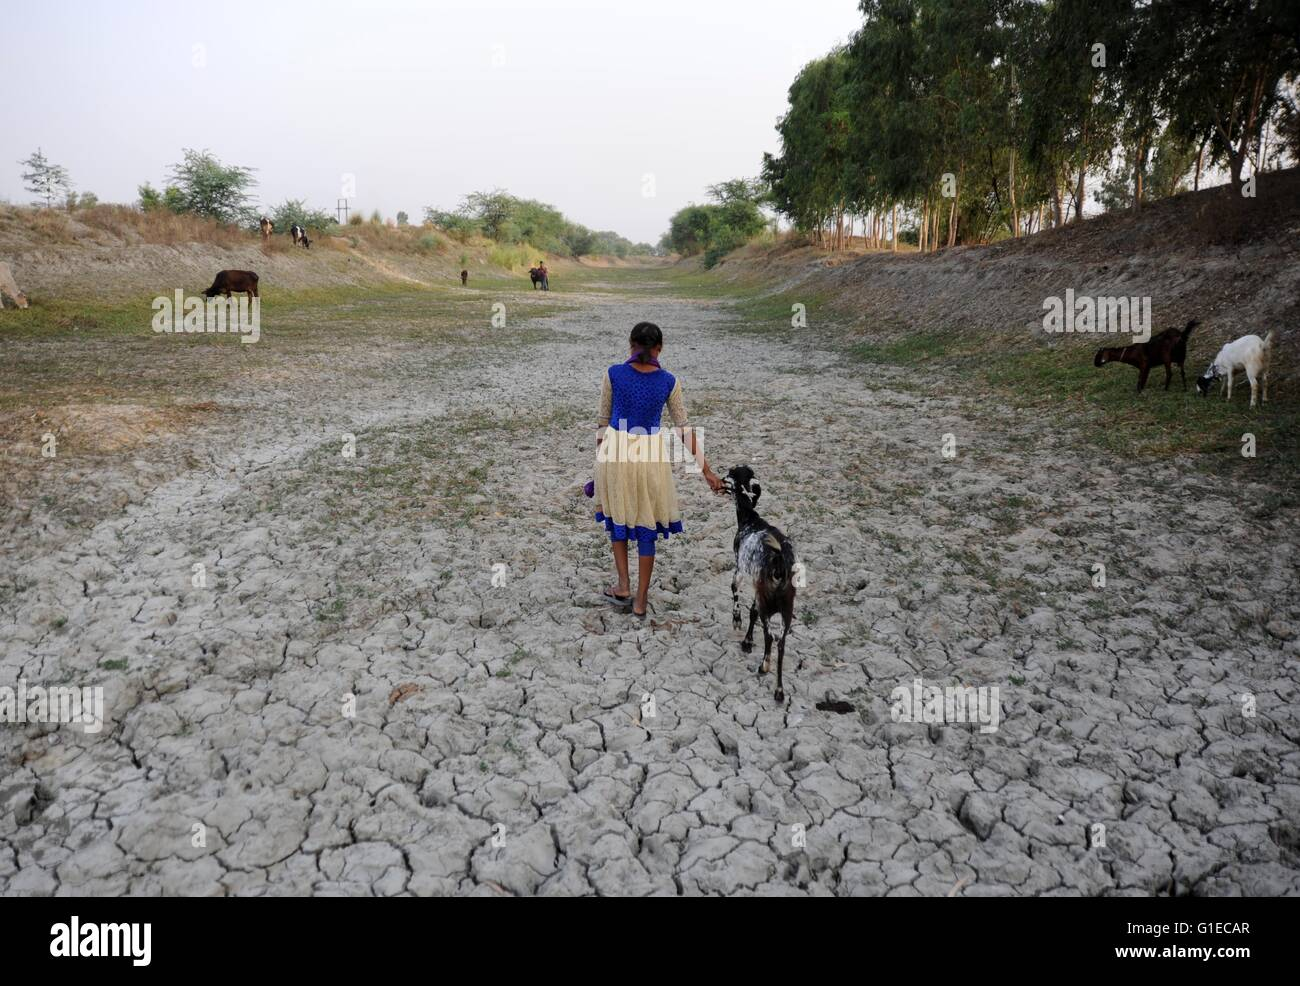 Allahabad, Uttar Pradesh, India. 14th May, 2016. Allahabad: A girls walks with her cattle at parched bed of River Stock Photo